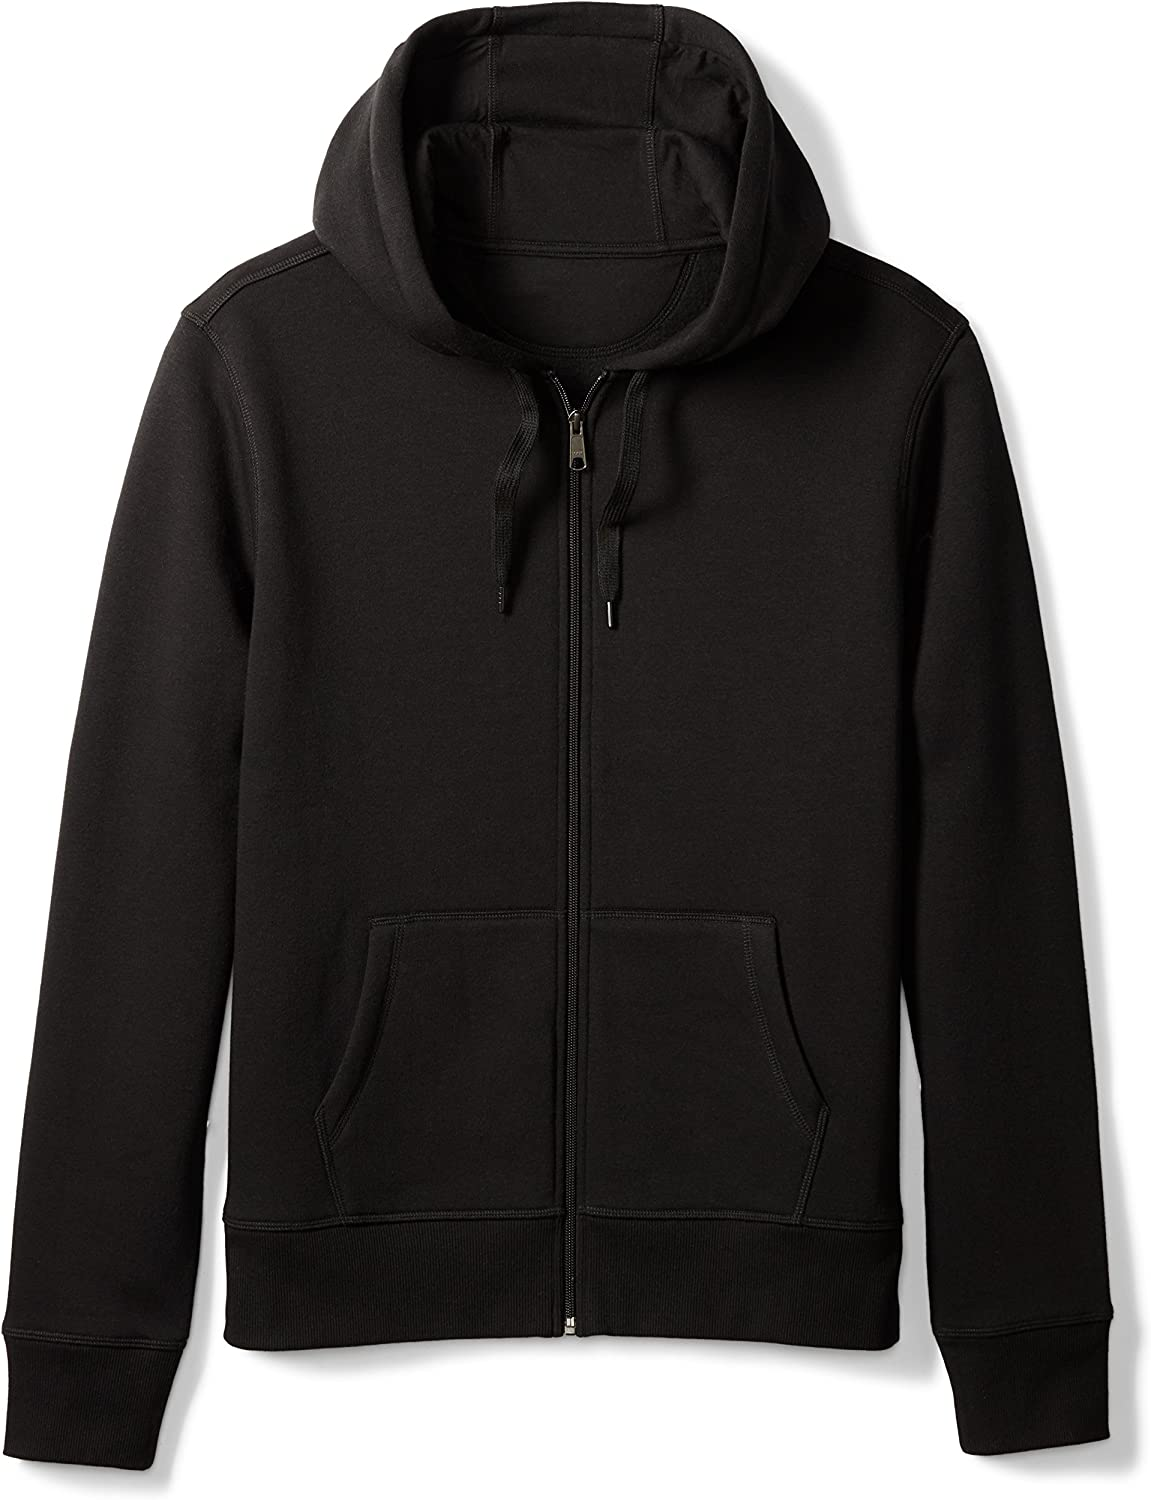 Essentials Men's Full-Zip Hooded Fleece Sweatshirt: Clothing